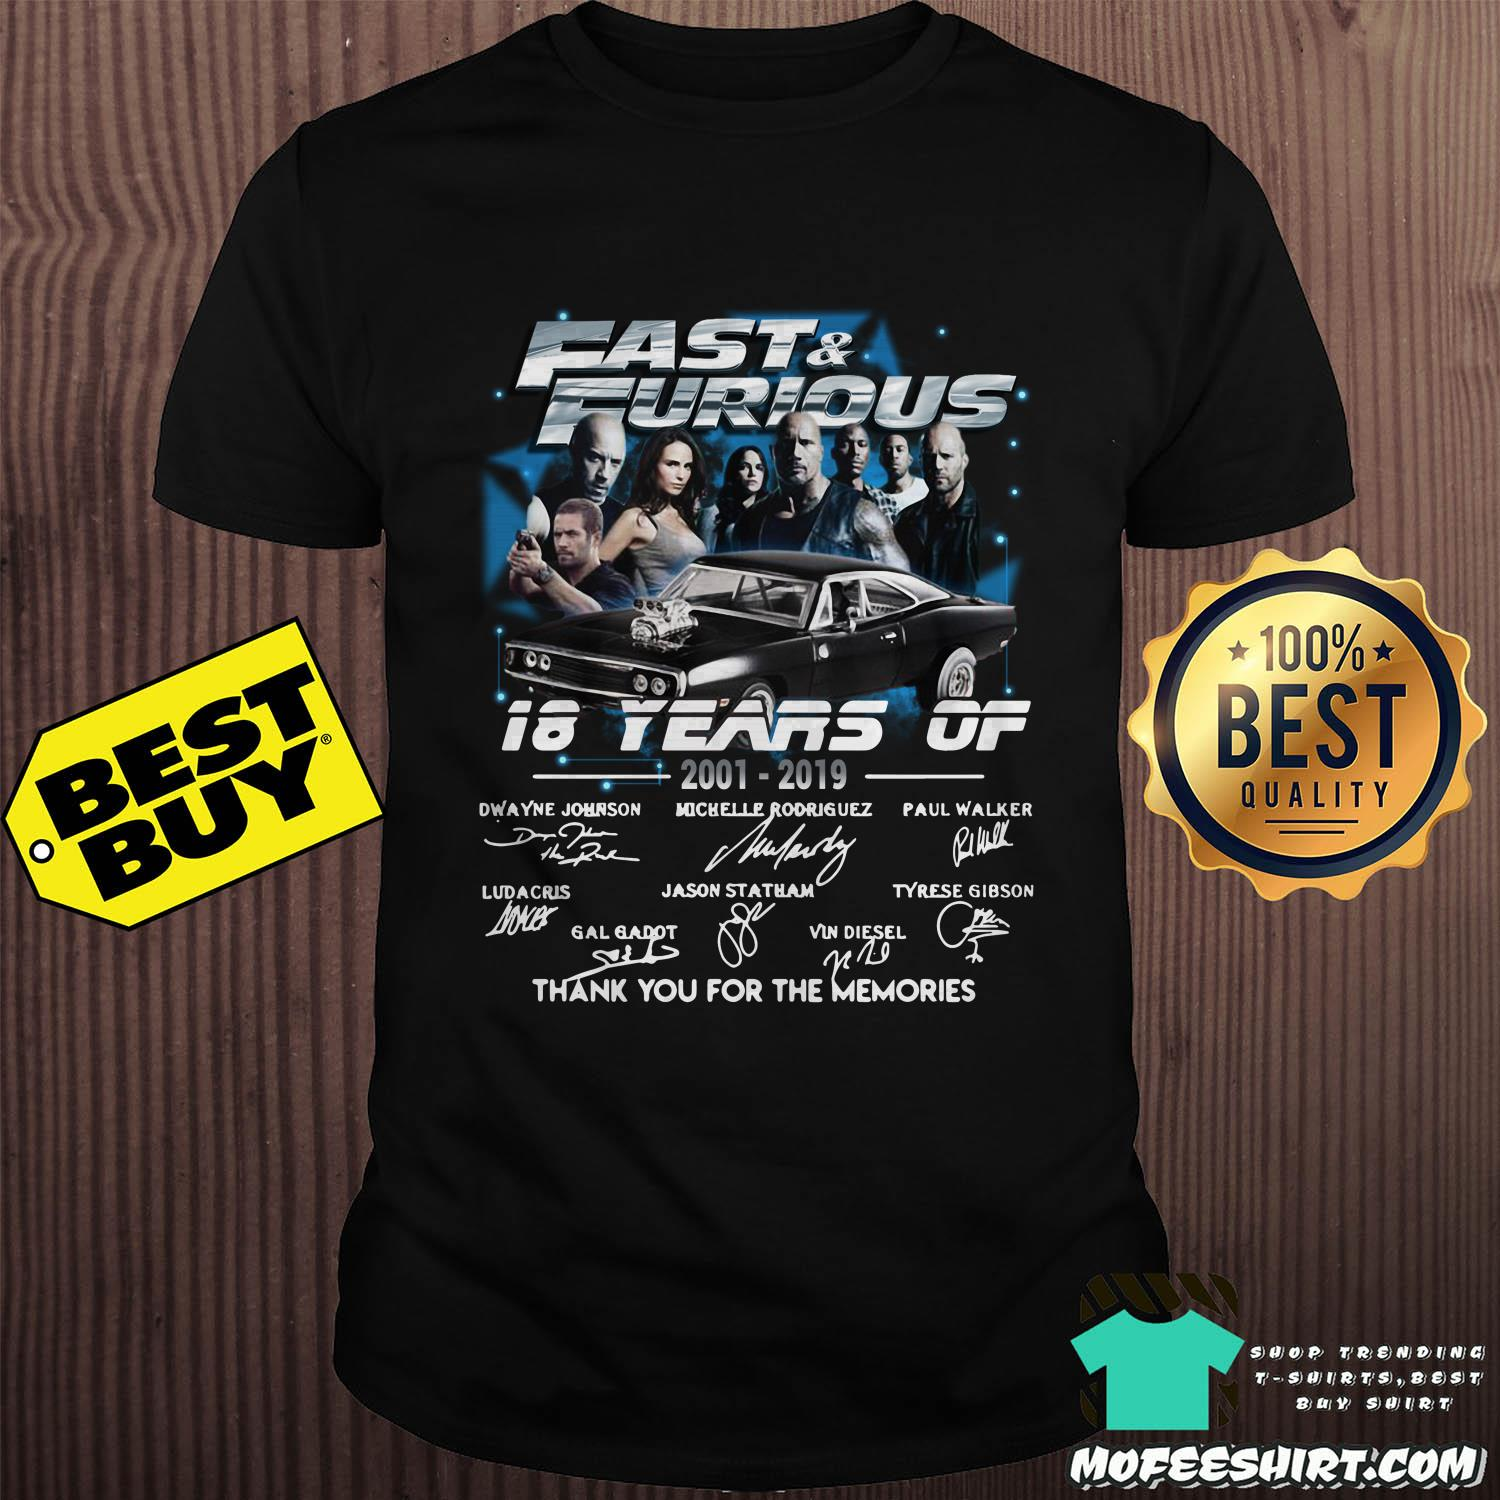 fast and furious 18 years of 2001 2019 thank you for the memories signature shirt sweater - Fast And Furious 18 Years Of 2001-2019 Thank You For The Memories Signature Shirt Sweater